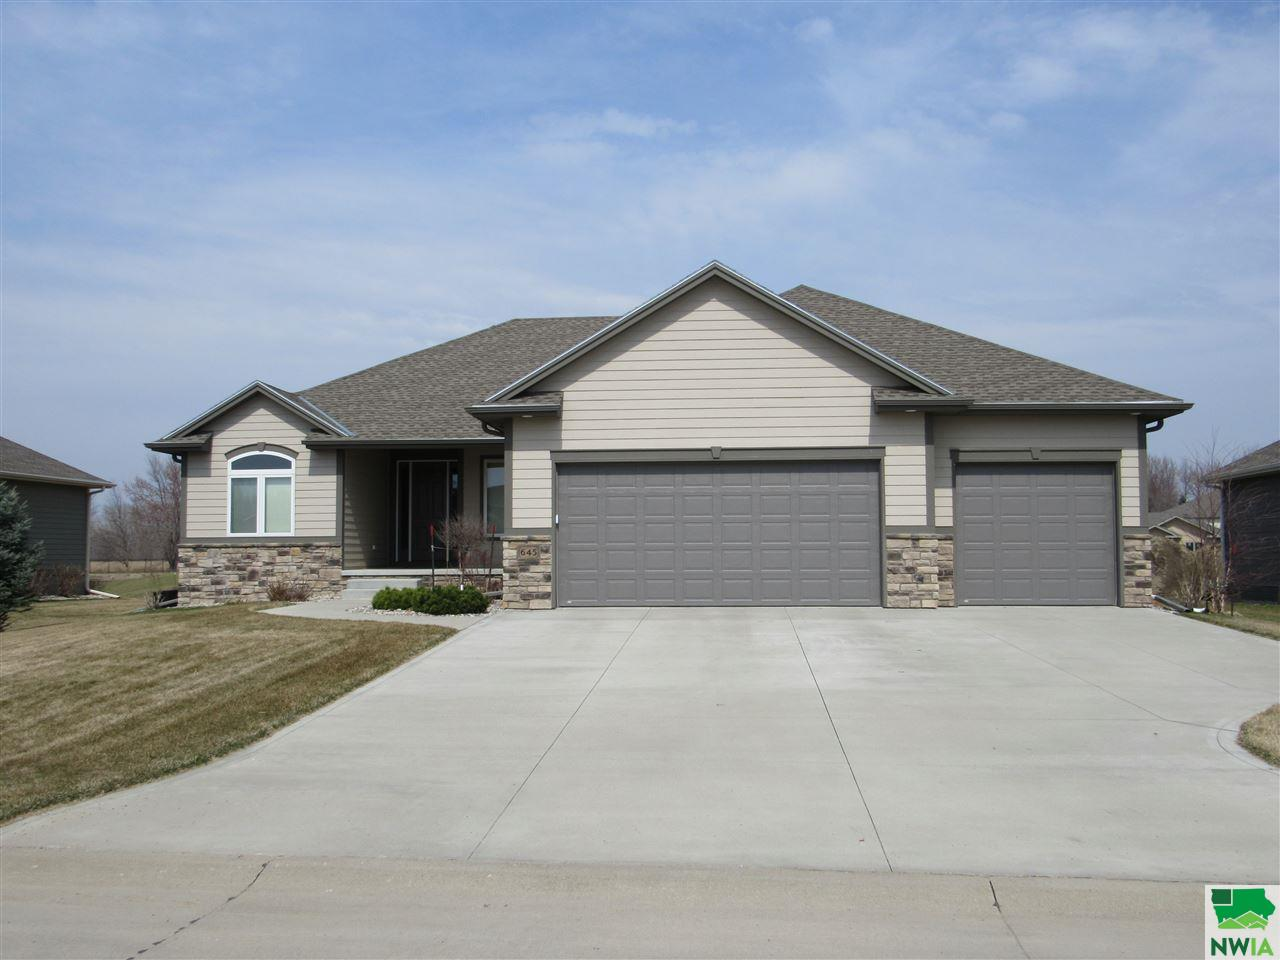 Property for sale at 645 Bluestem Tr, Dakota Dunes,  SD 57049